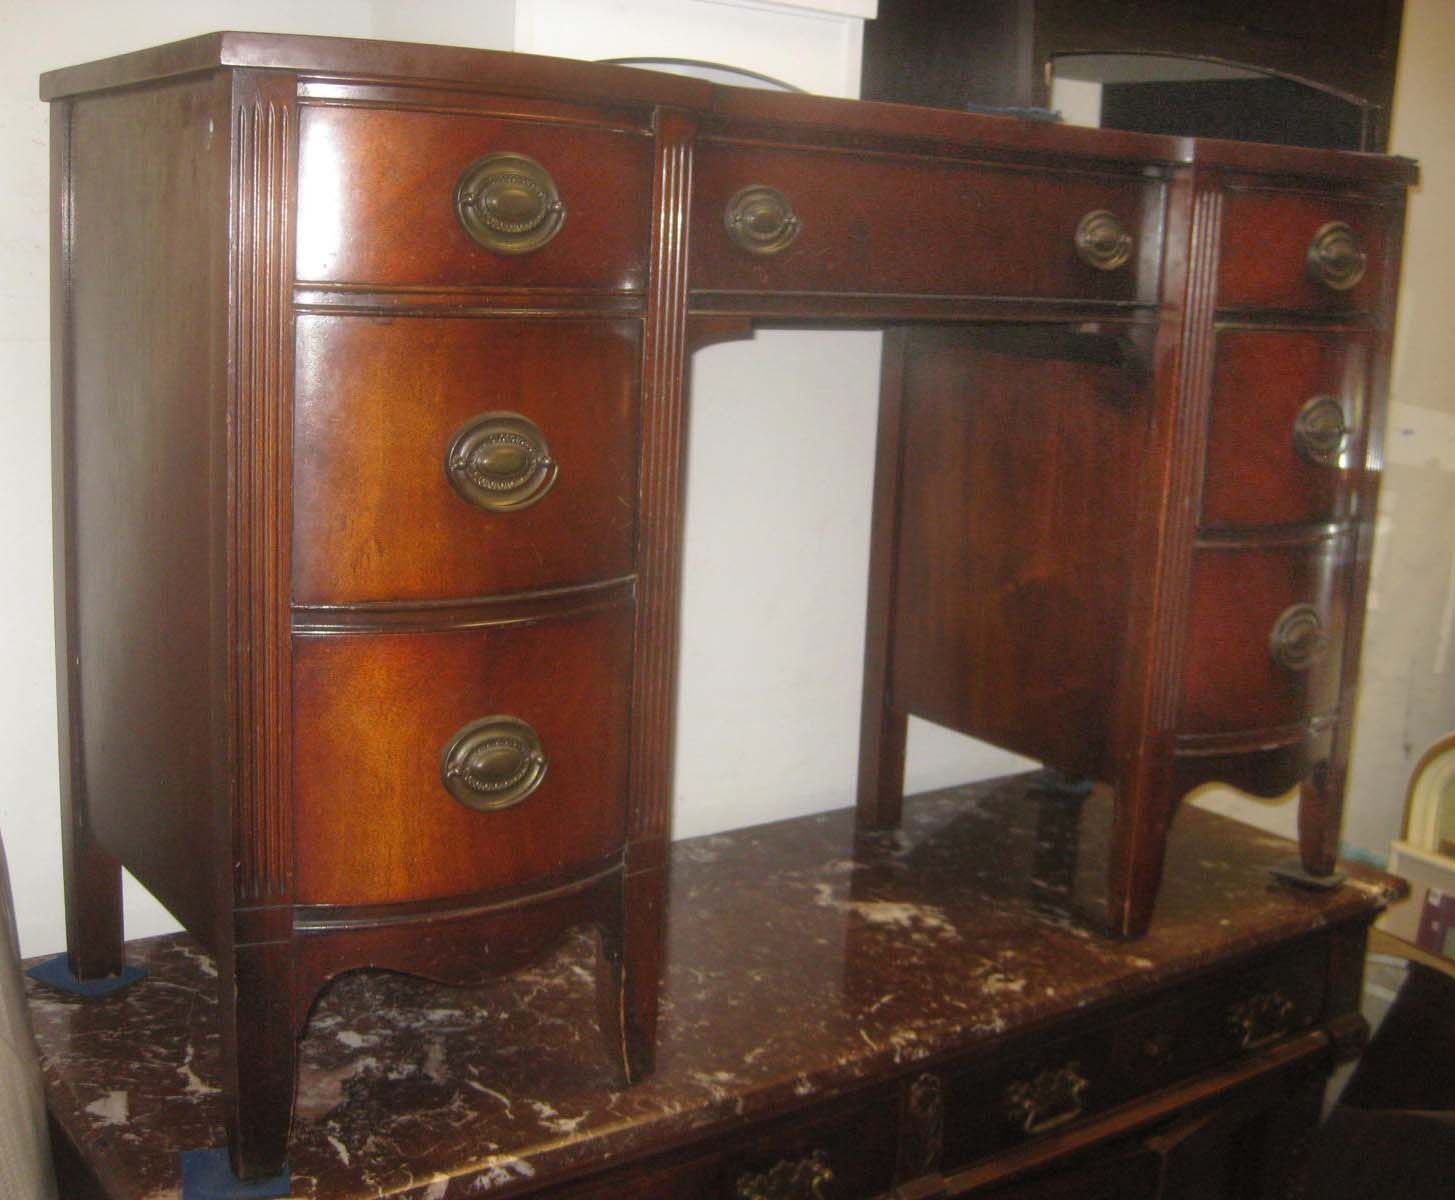 Charming Duncan Phyfe Mahogany Desk....Could Be Used As A Vanity Or For